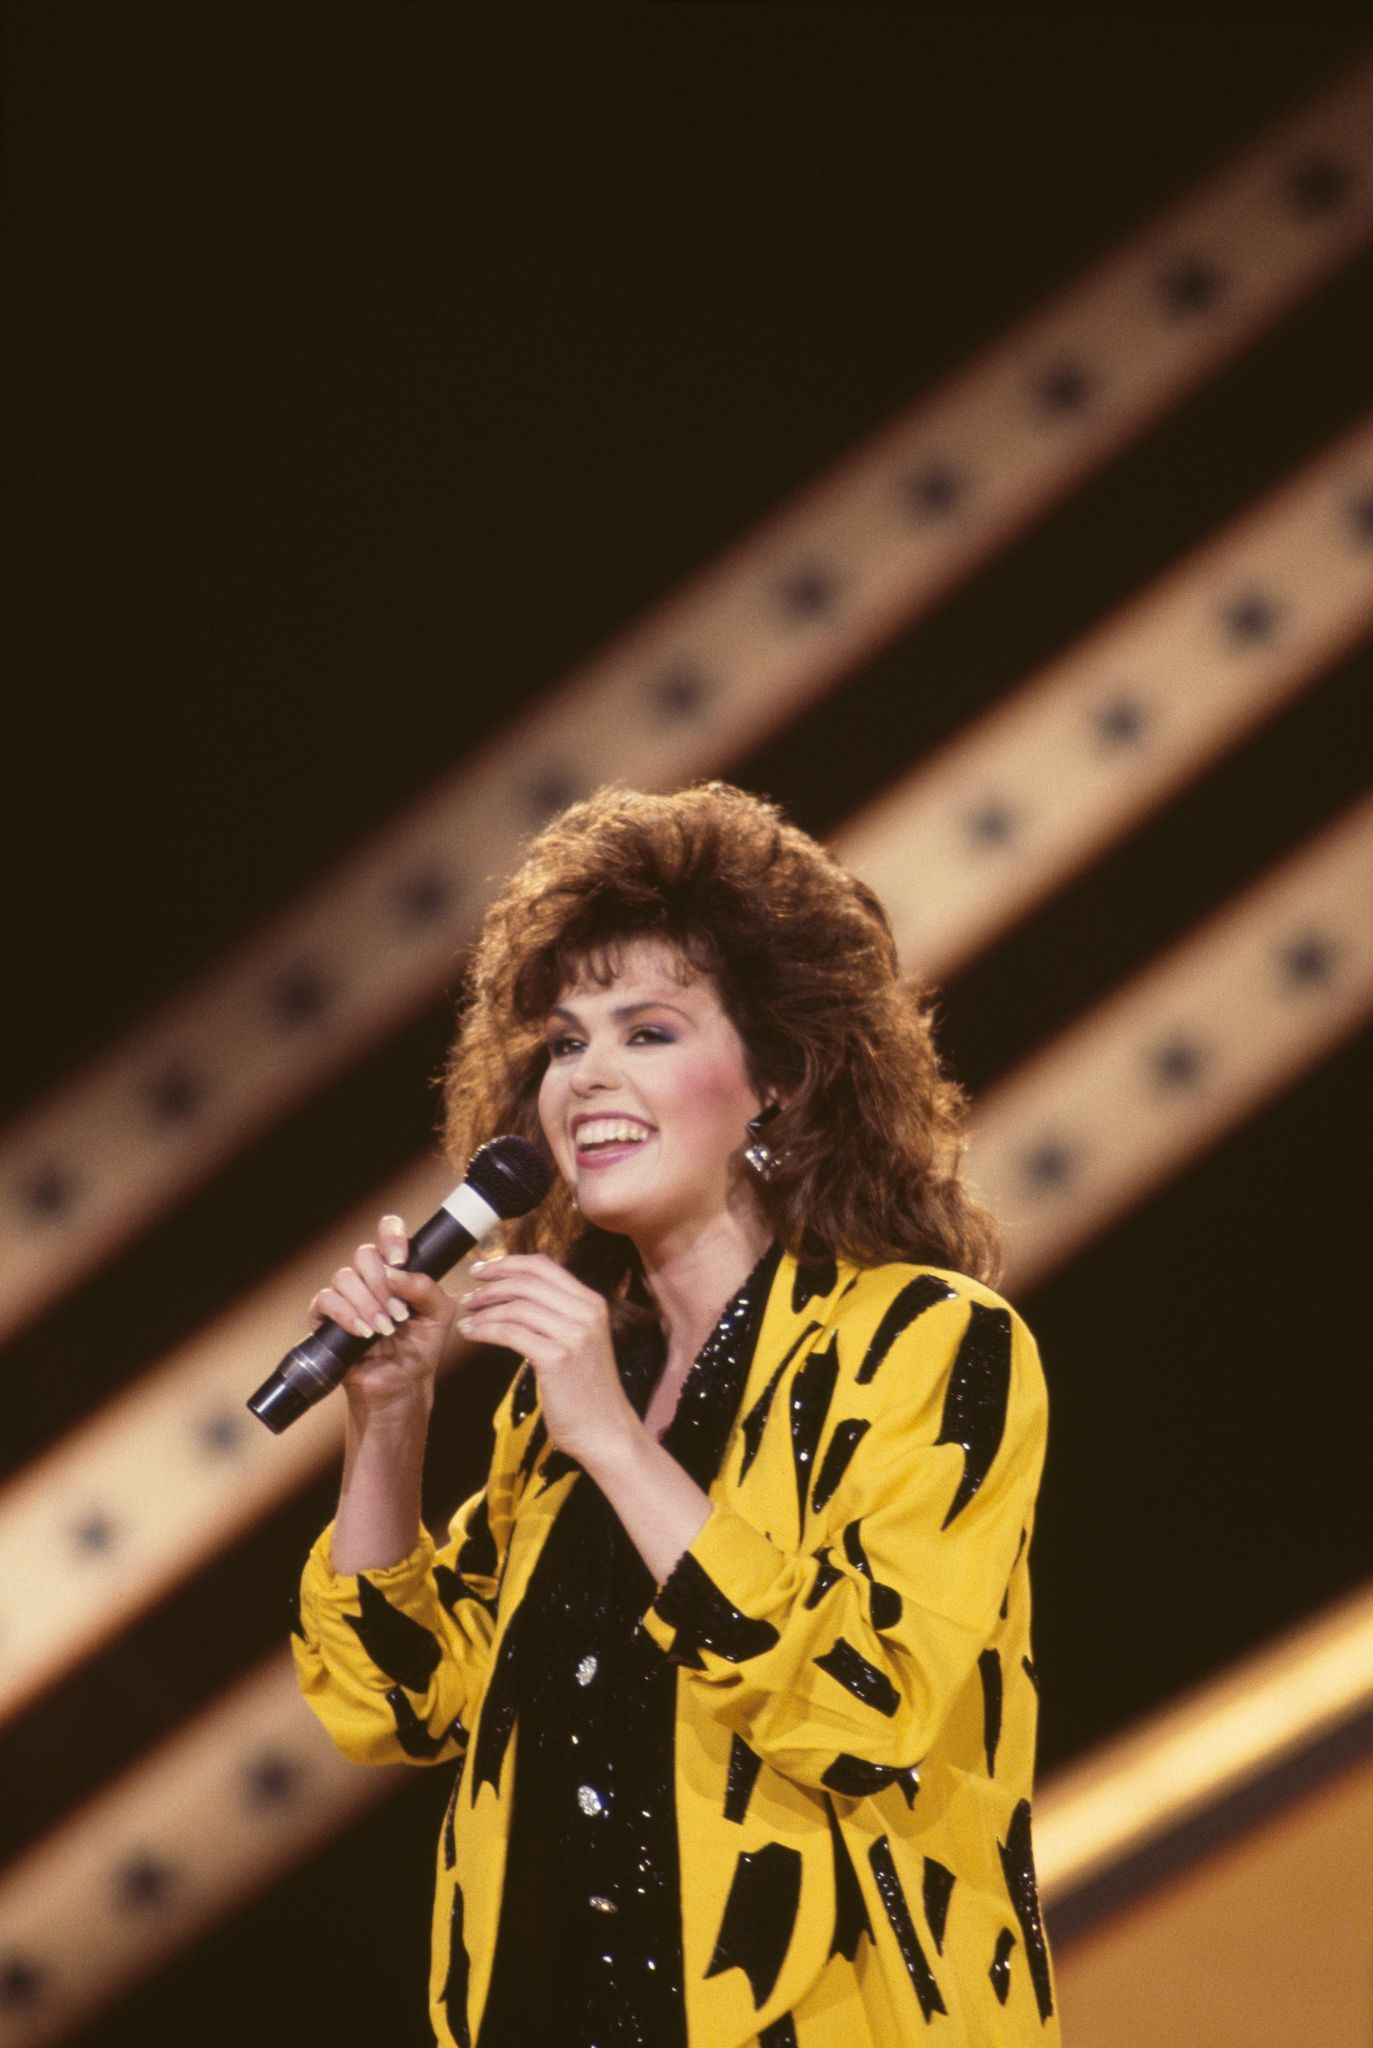 Marie Osmond, US singer and musician at the International Festival of Country Music, London April 1986. |Photo :Getty Images)